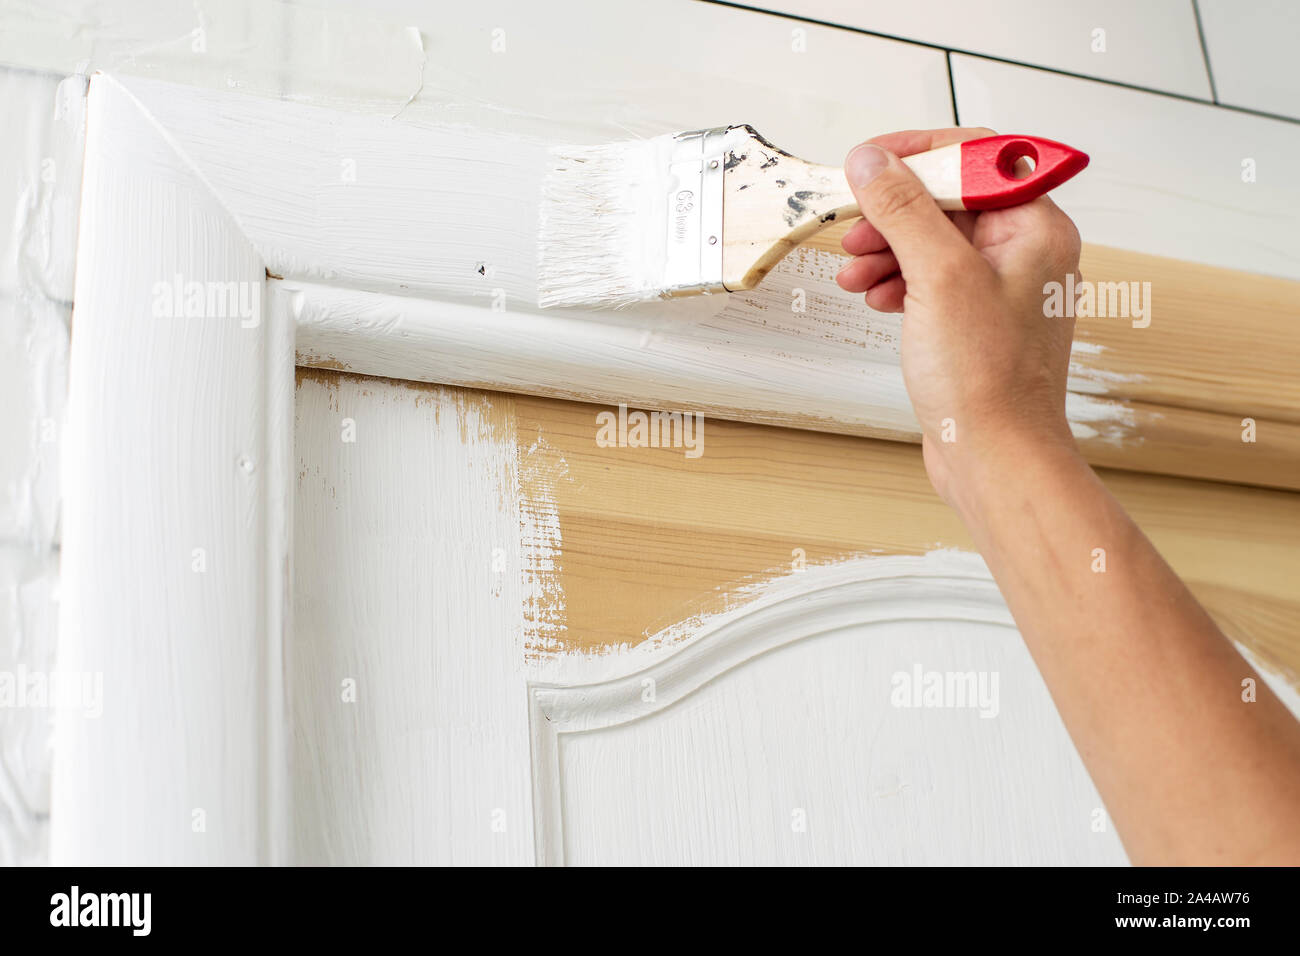 Home Repairs Hand With A Brush Paints A Wooden Door Frame In White Color In The Bathroom Close Up Stock Photo Alamy